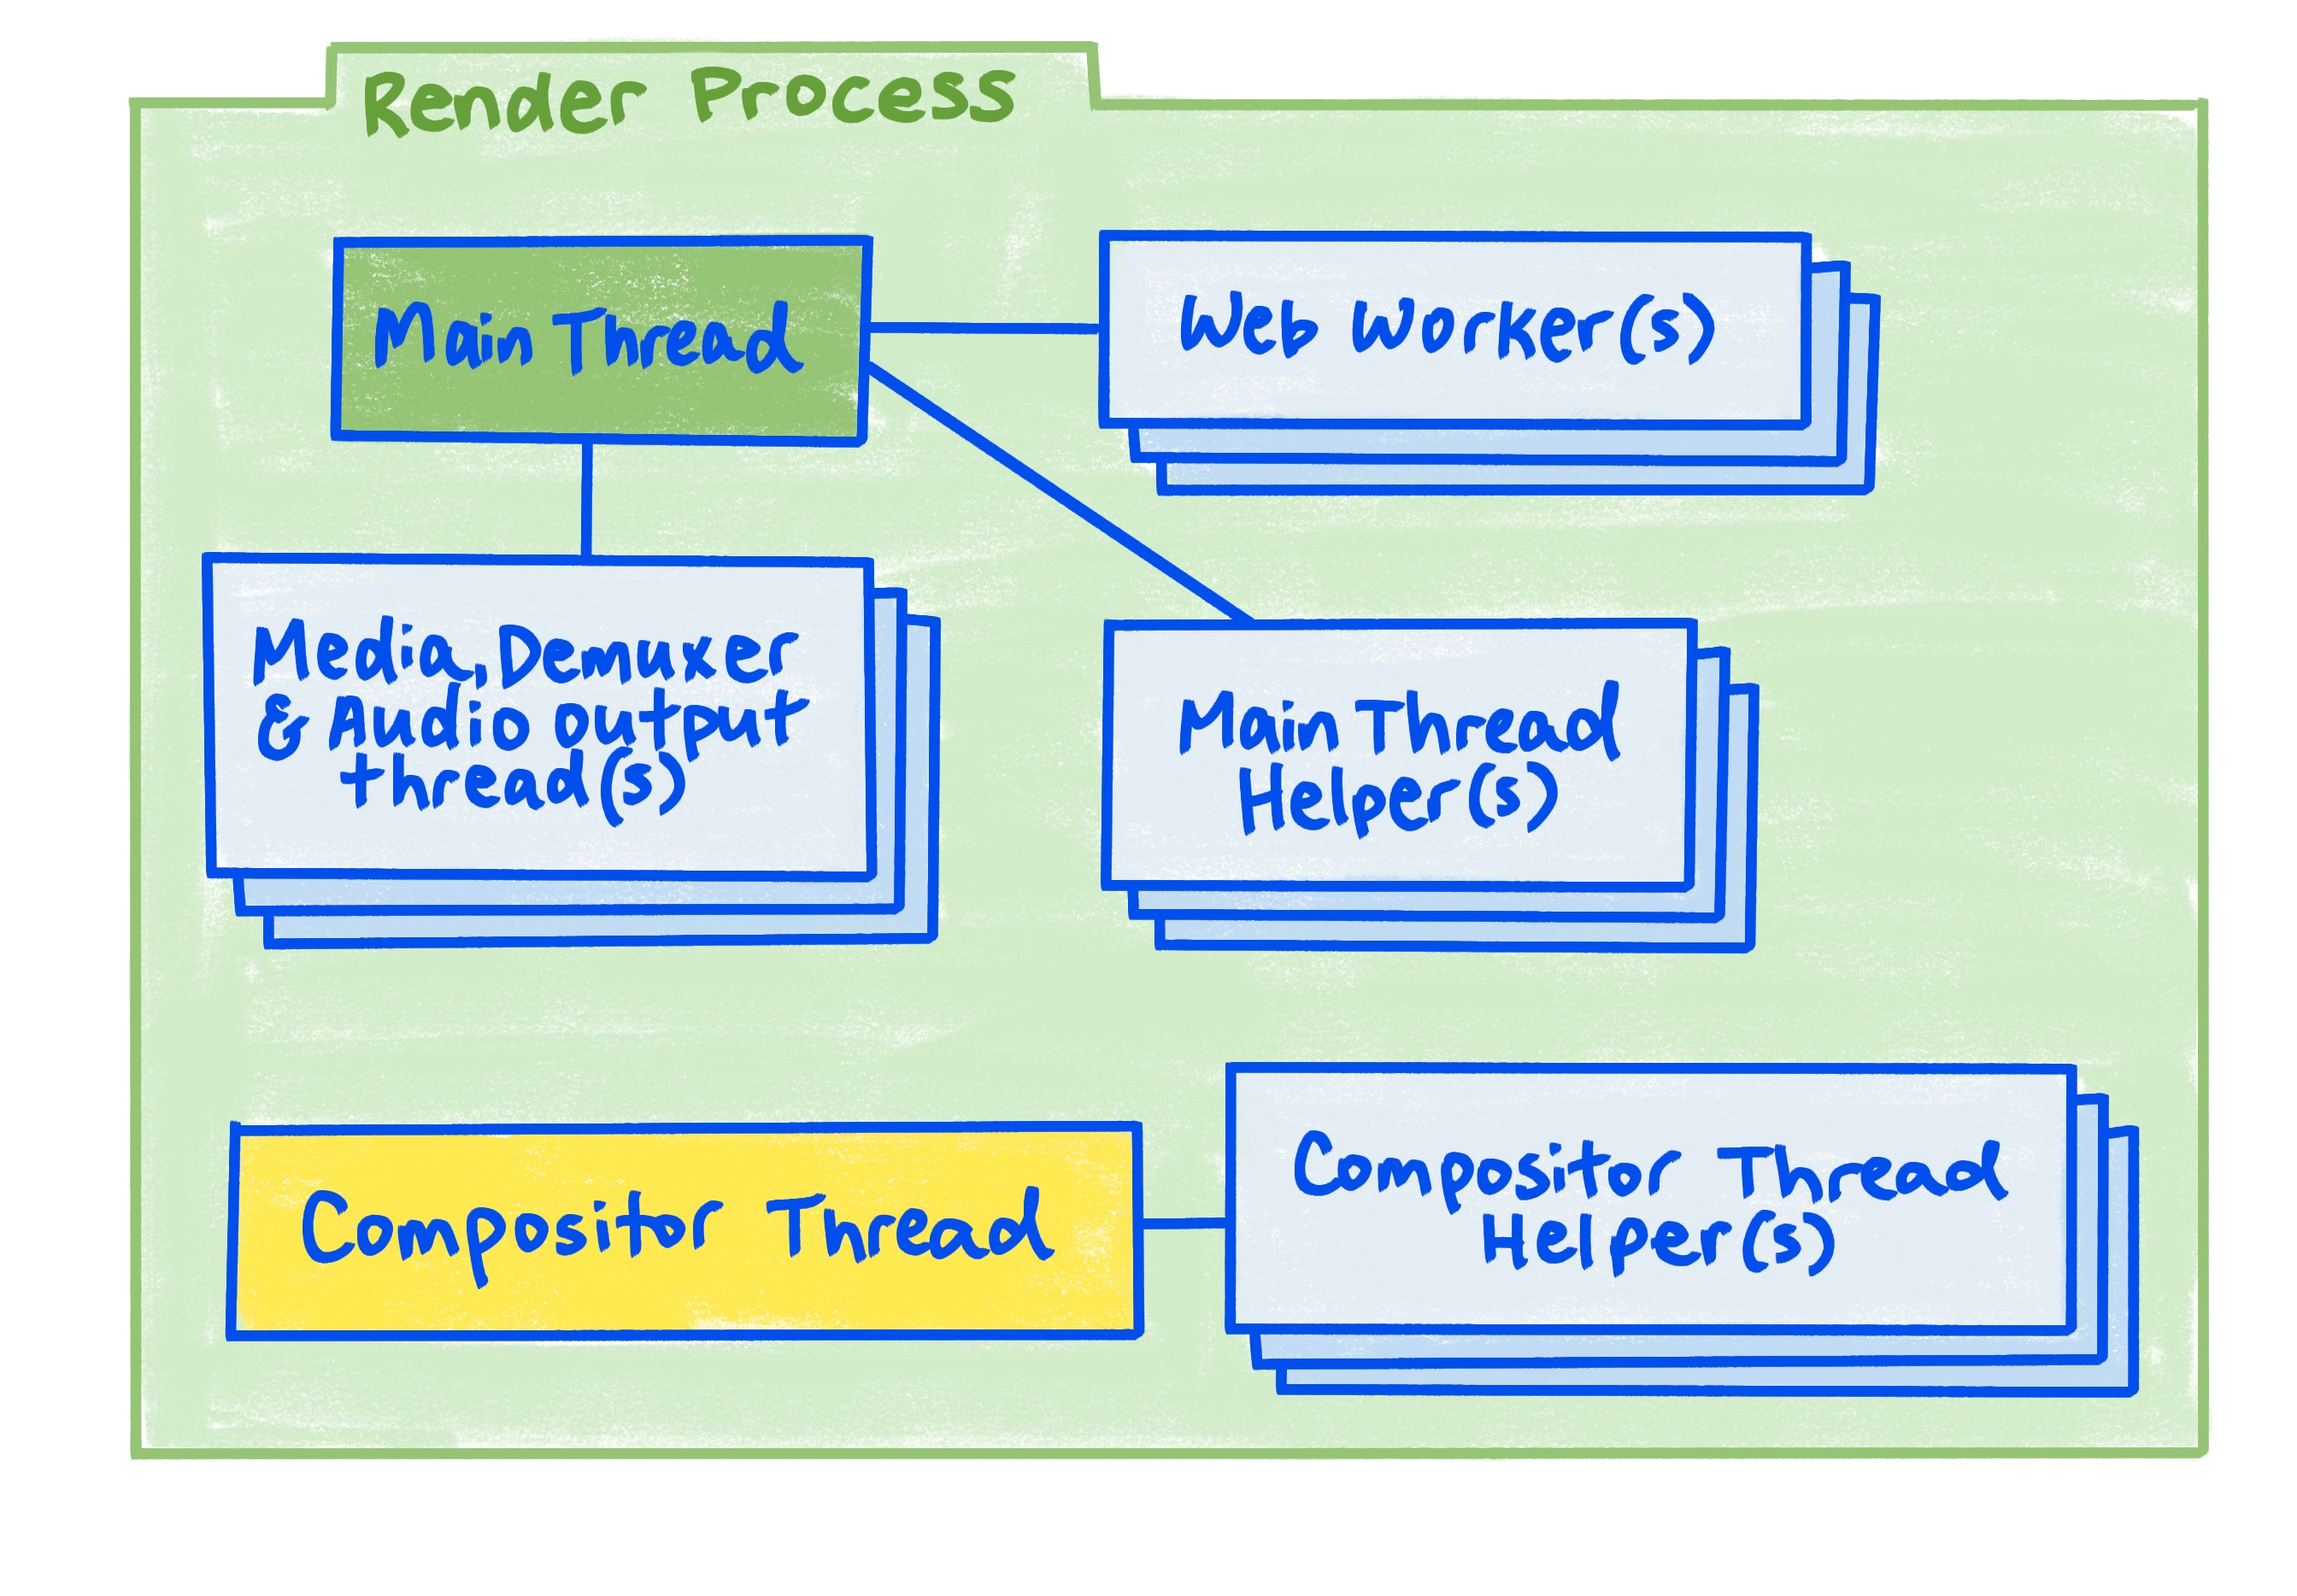 A diagram of the render process as described in the article.